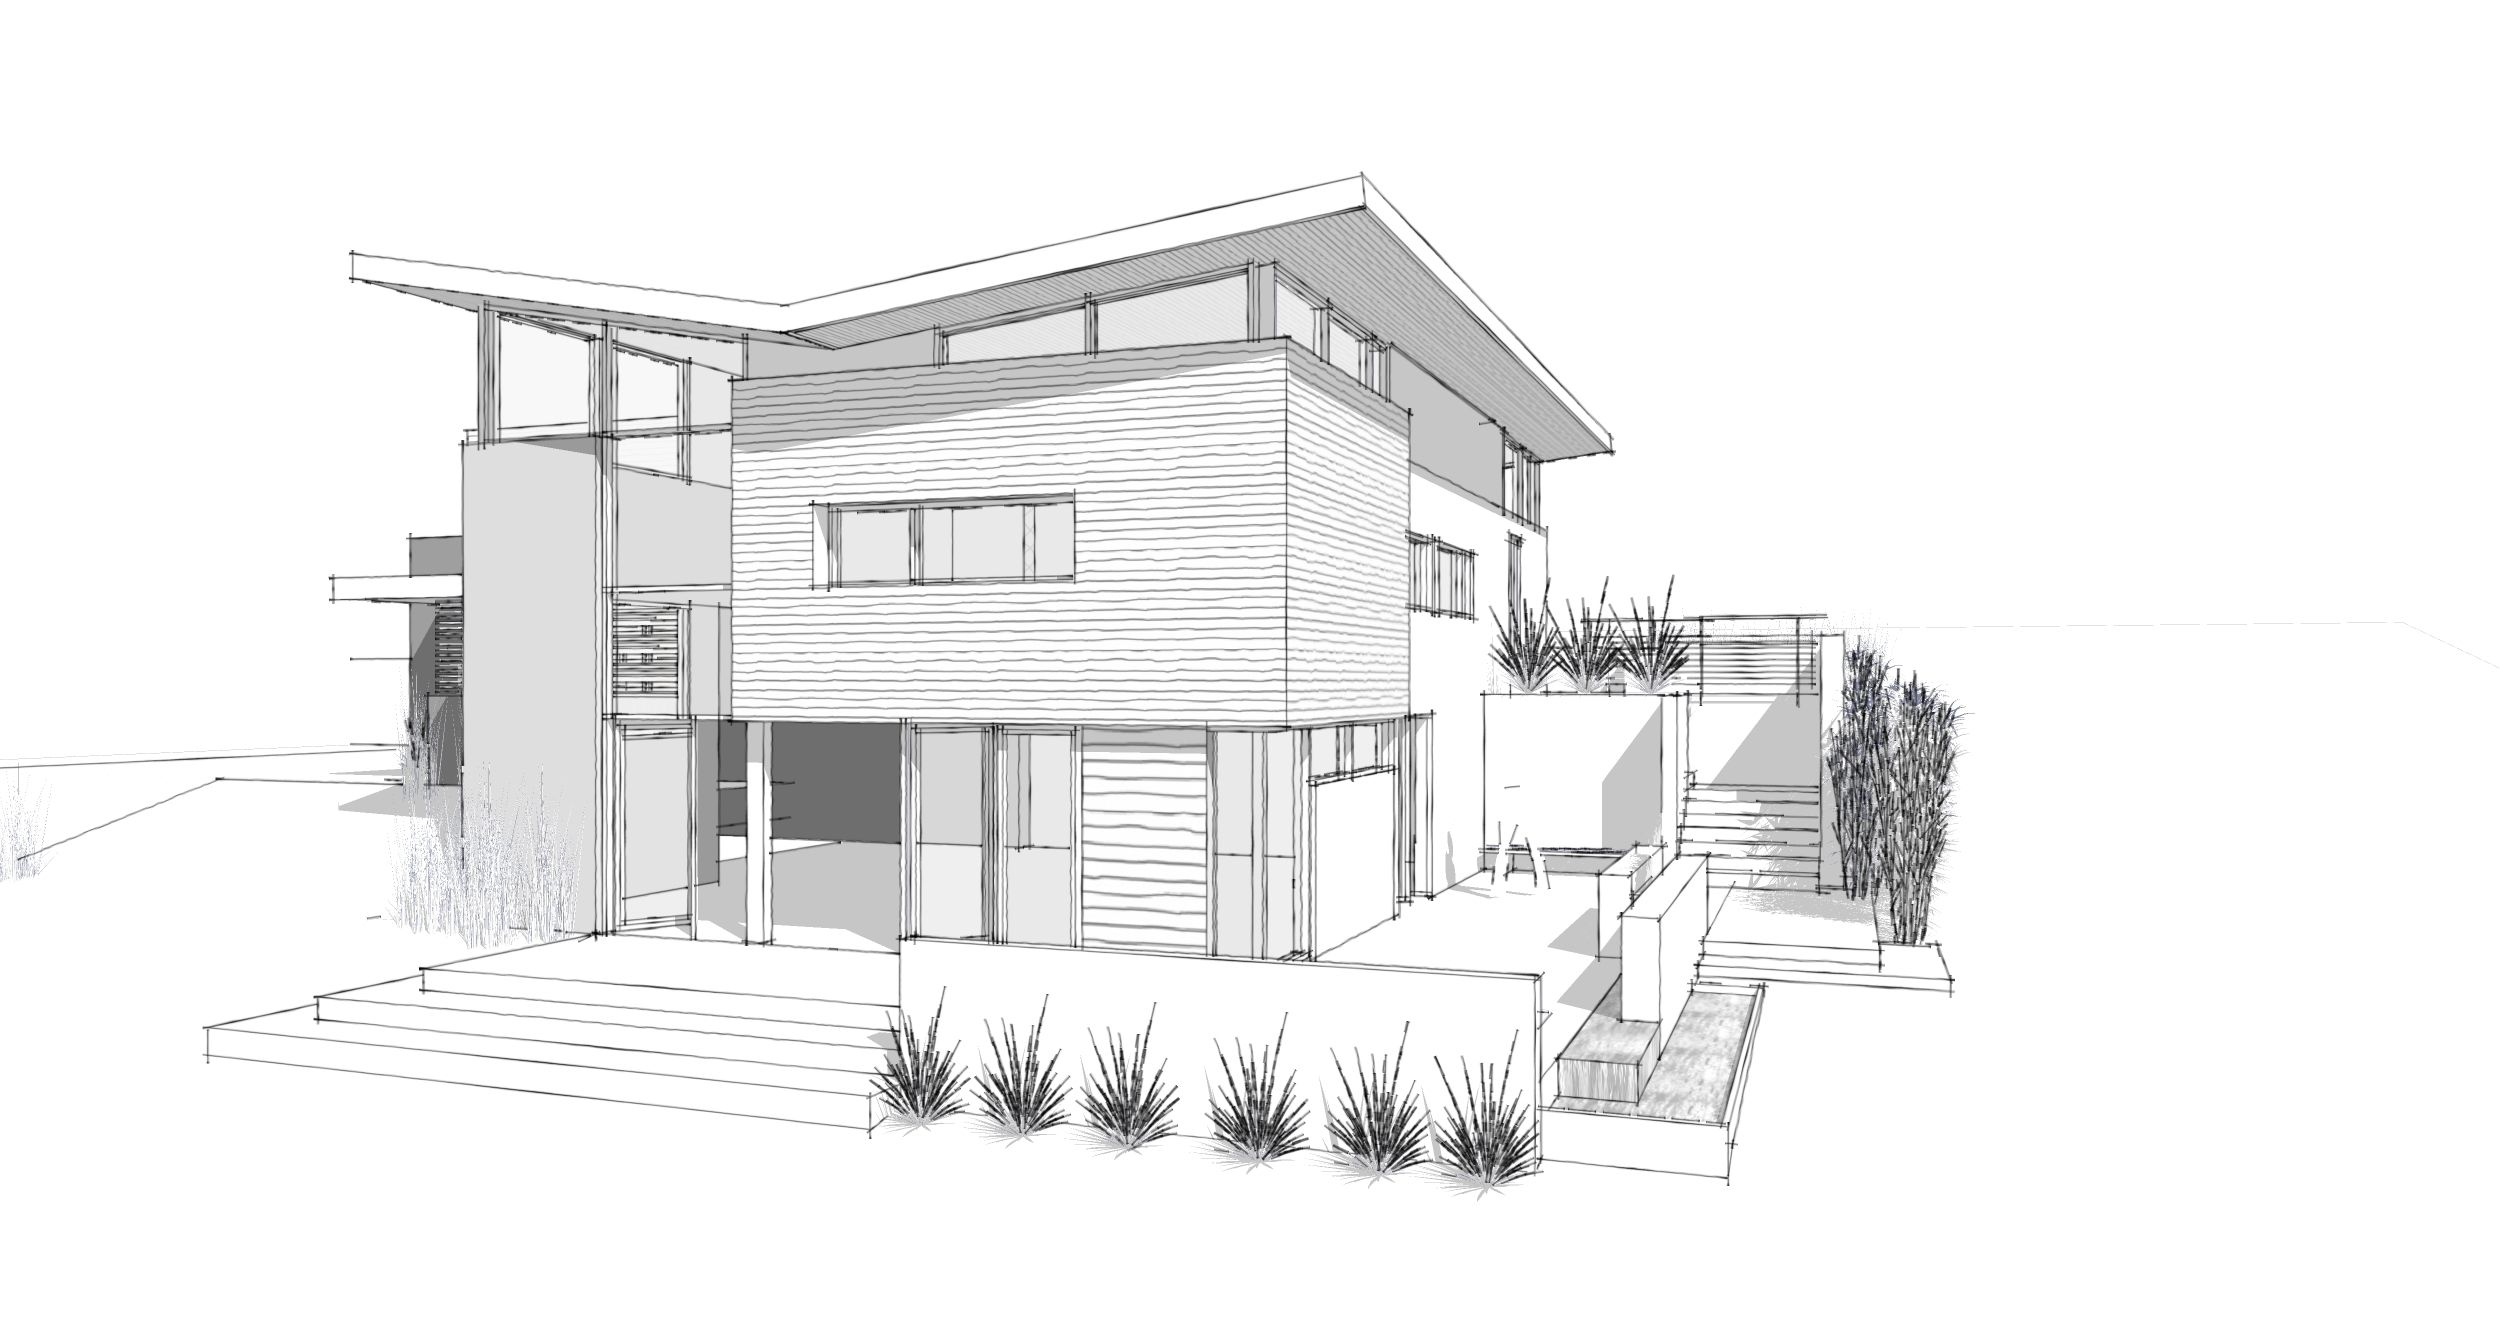 Modern house architecture sketch architectural cozy on home design ideas also rh co pinterest